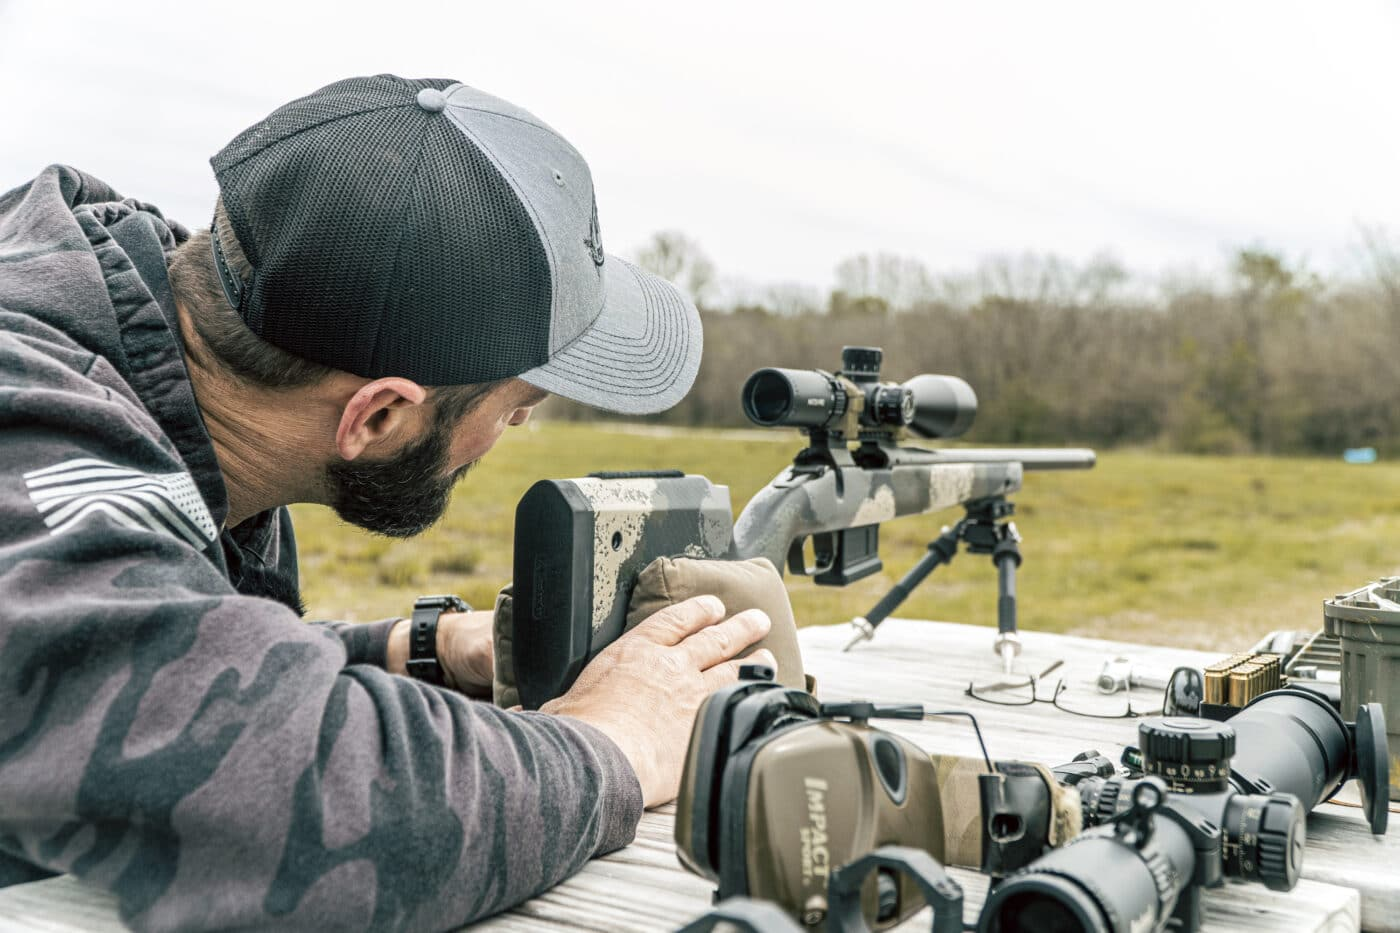 Swapping a scope on a rifle and sighting it In